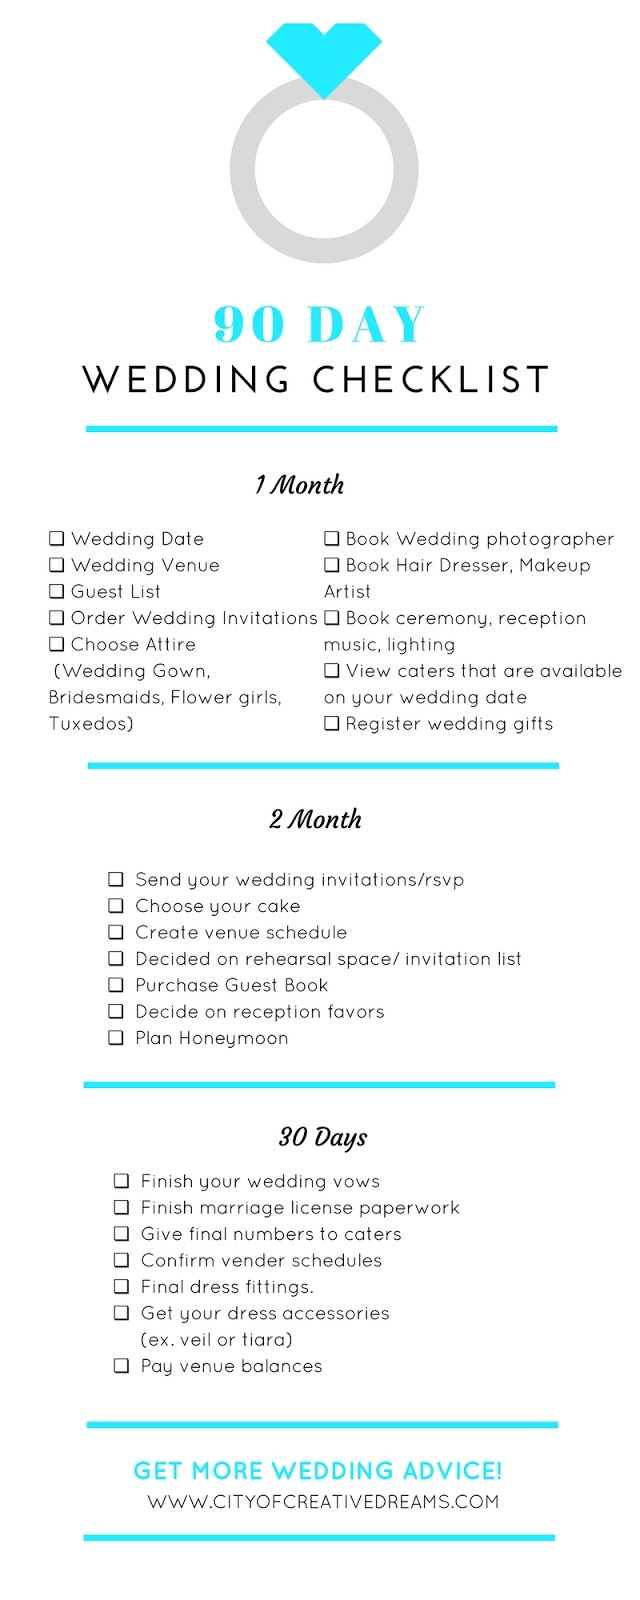 How to Plan A Wedding in 90 Days - City of Creative Dreams